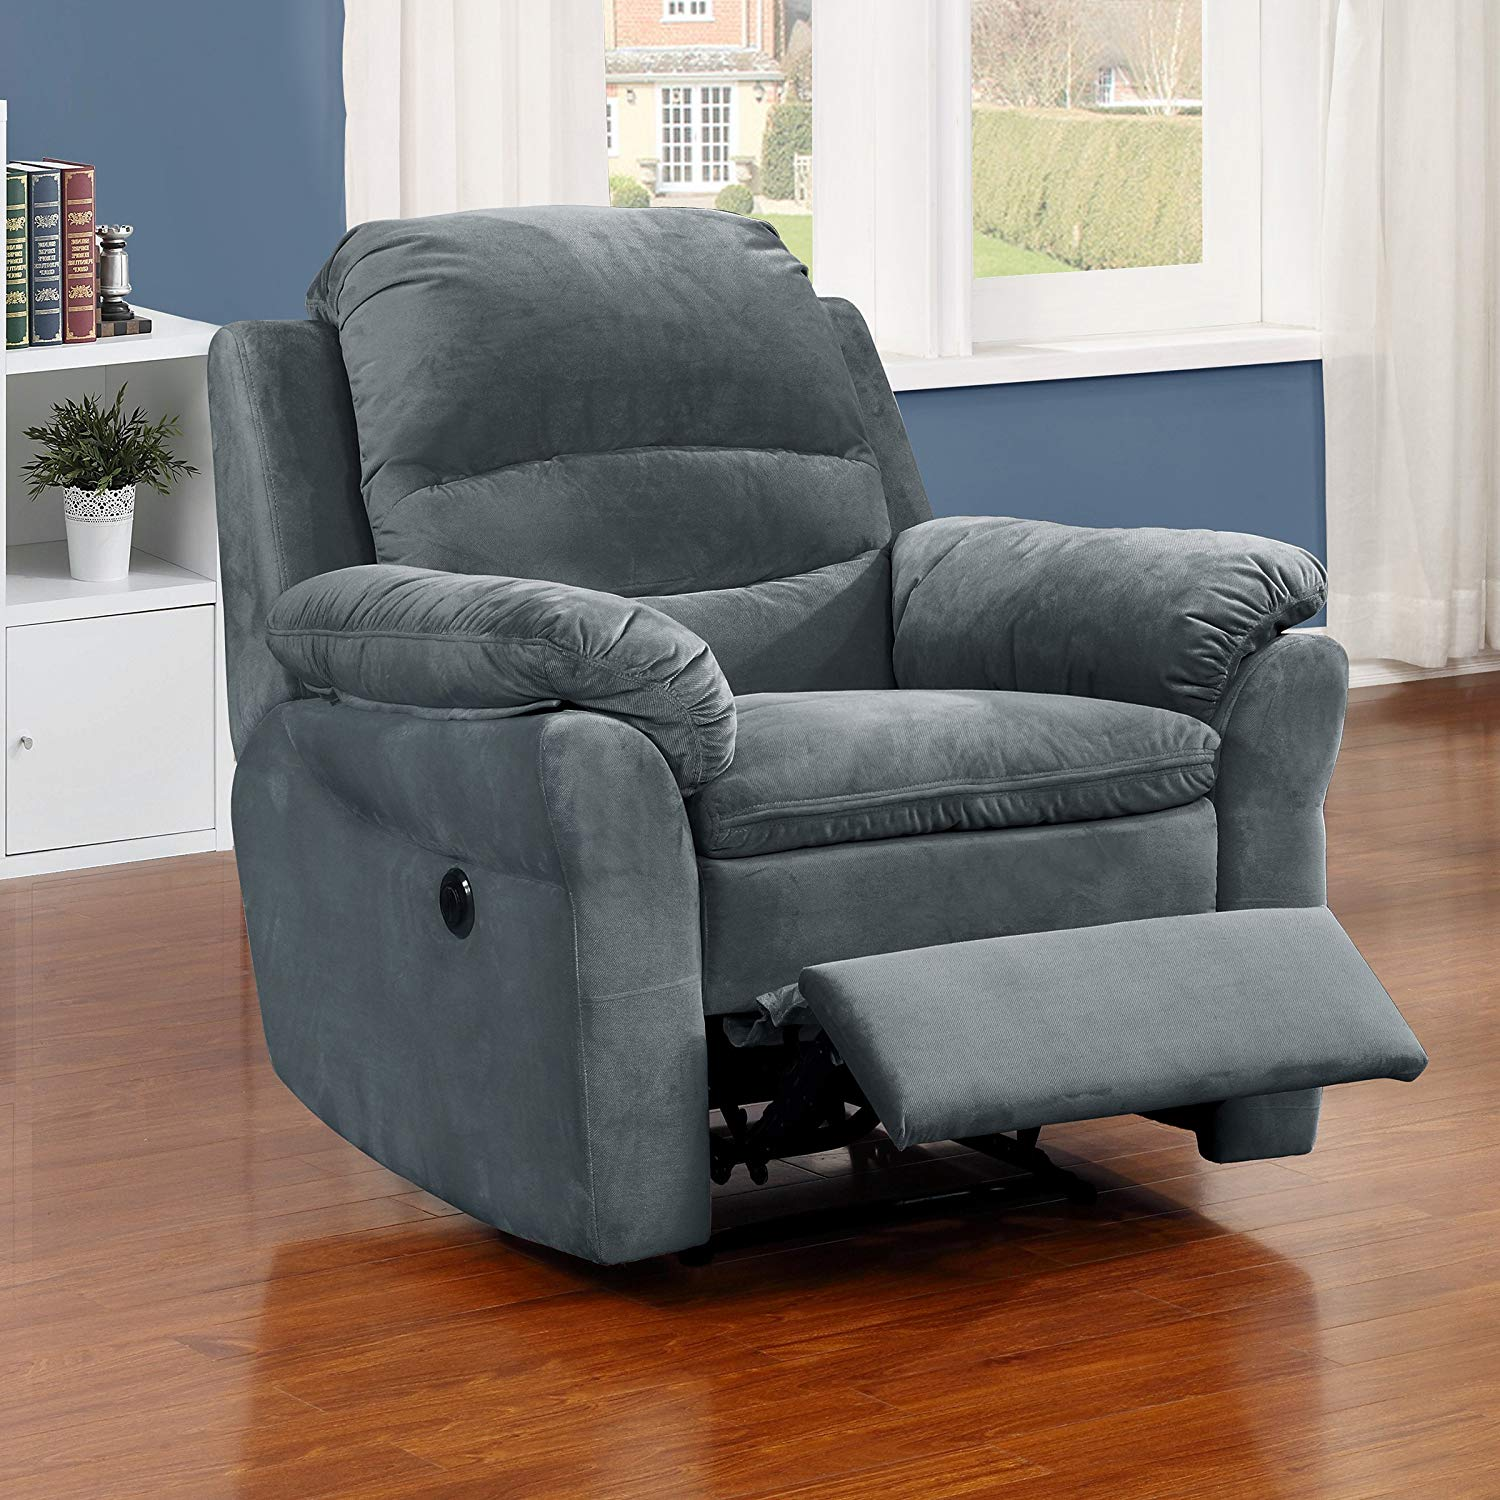 Christies Home Living Contemporary Style Fabric Upholstered Living Room Electric Recliner Power Chair, Dark Grey